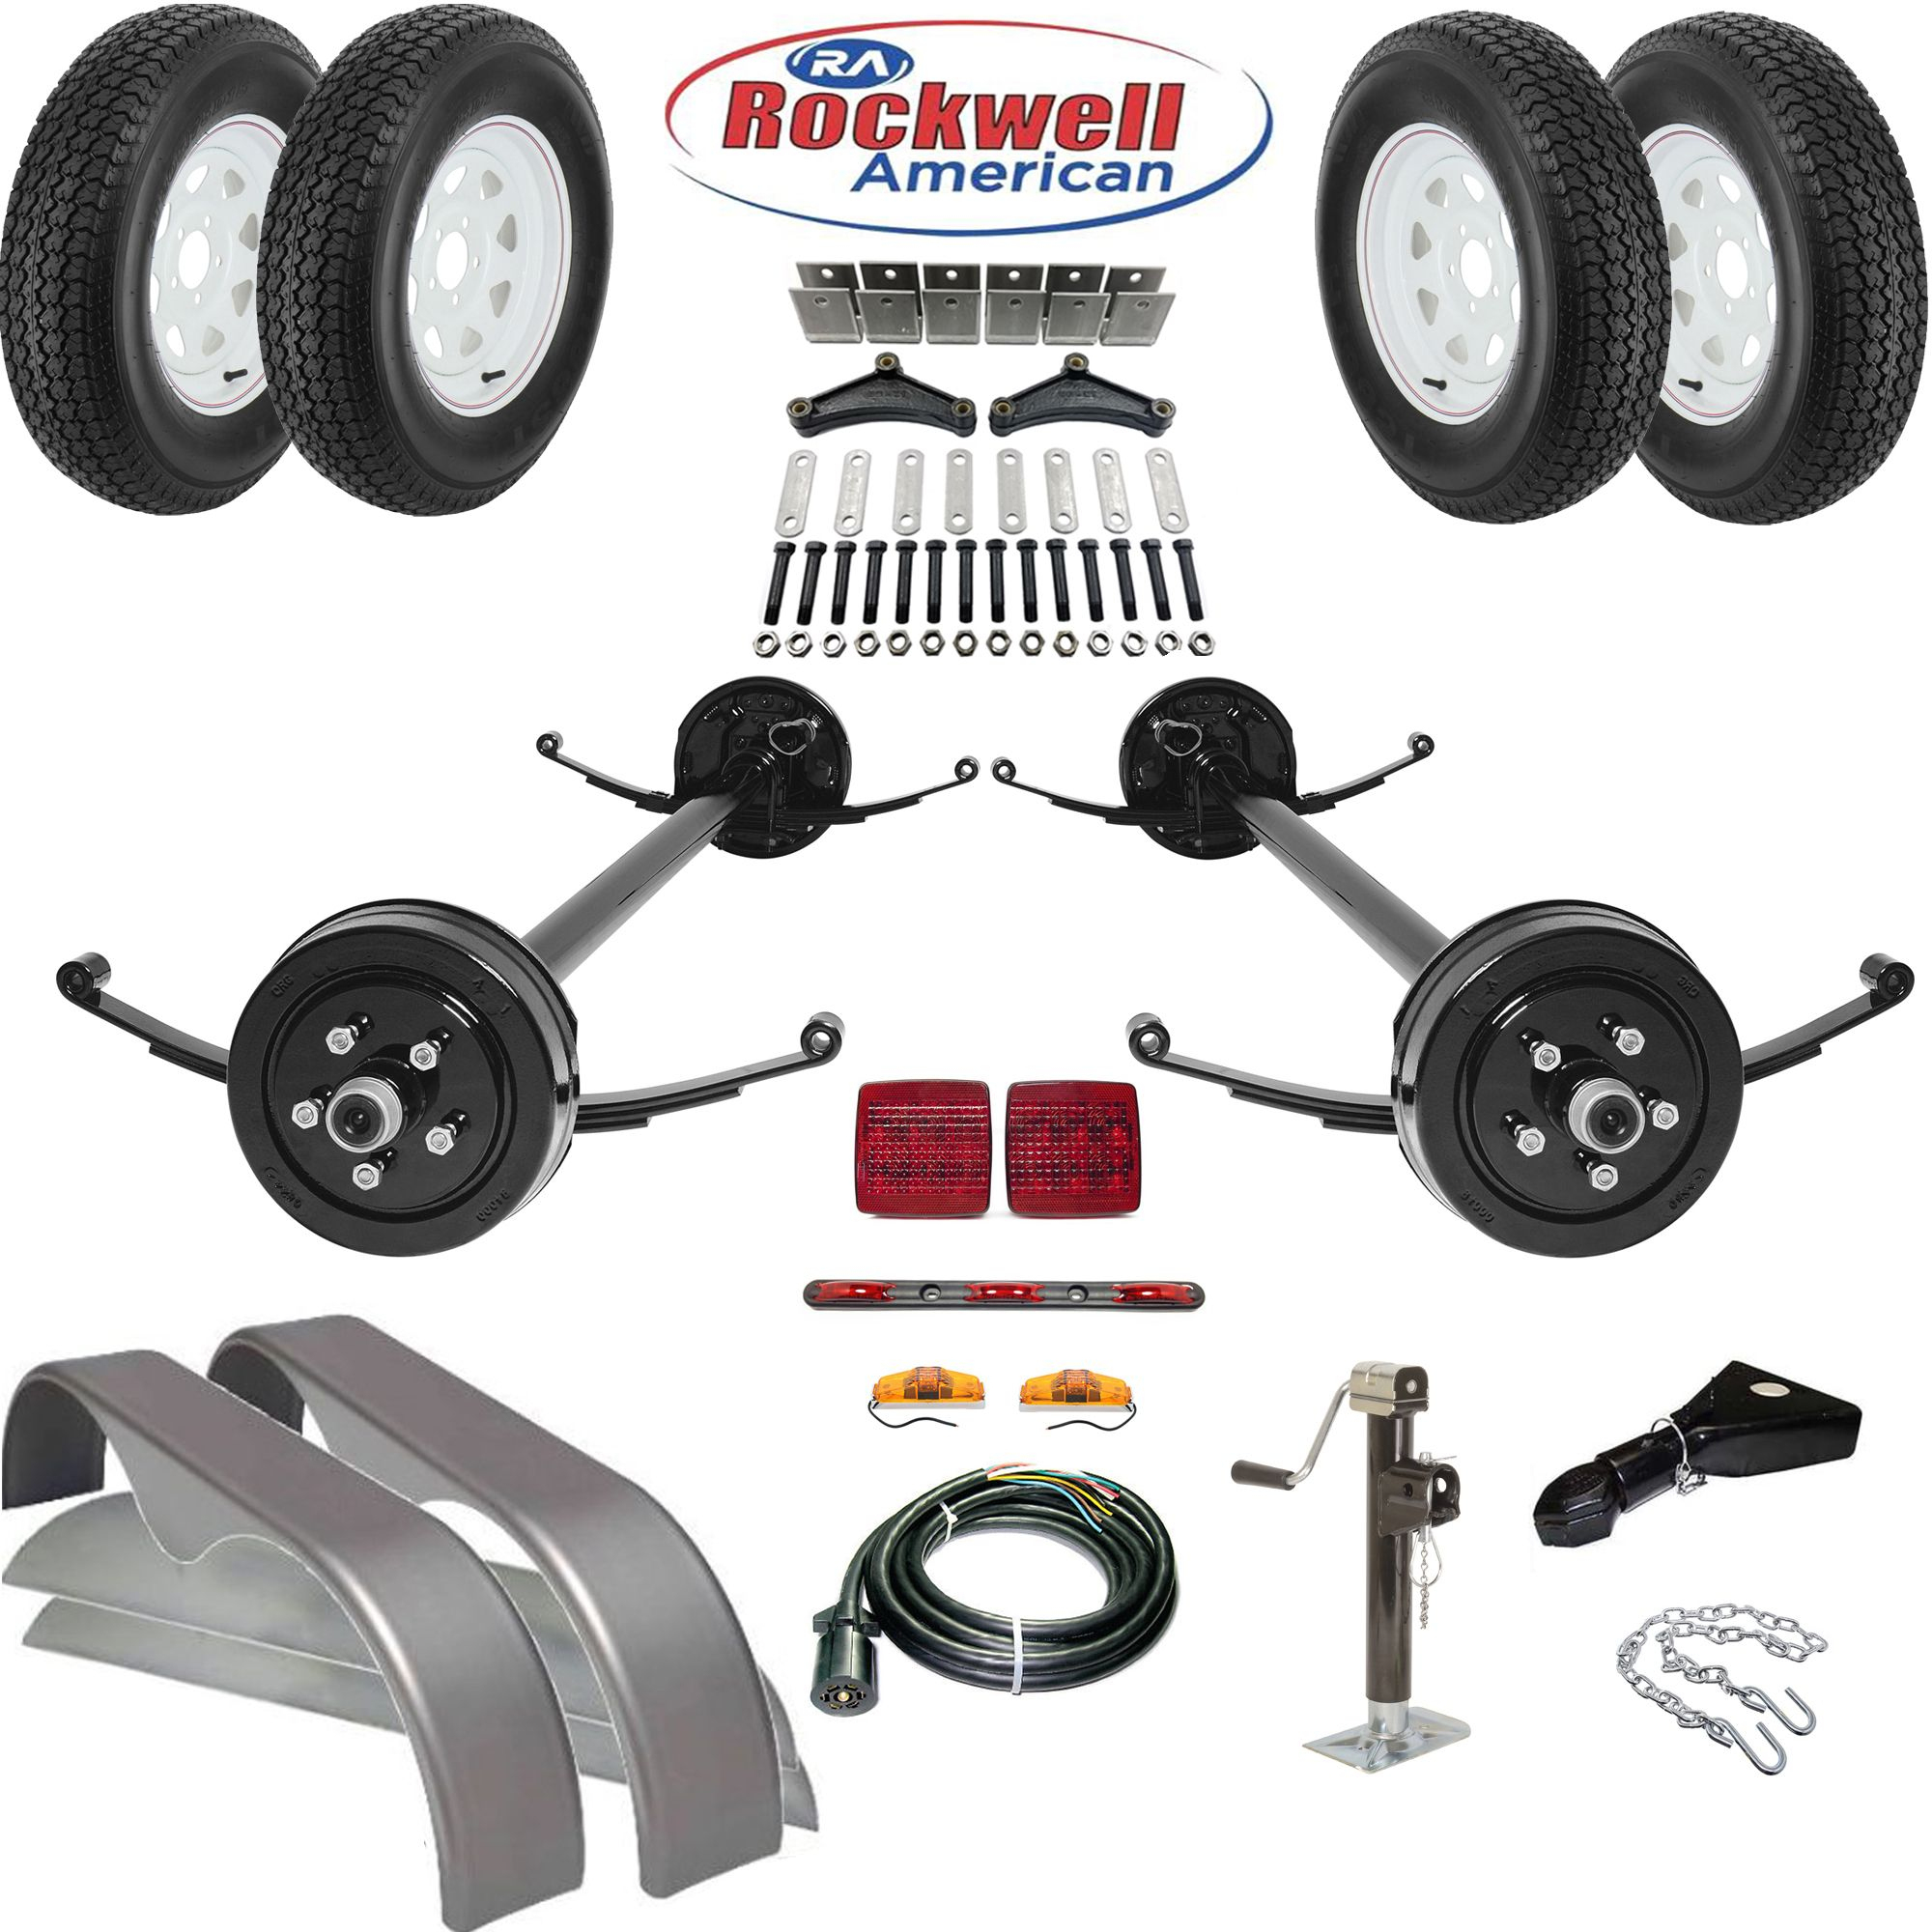 Tandem Brake Axle Trailer Parts Kit - 7,000 Lb Capacity | Utility - Hawke Dump Trailer Wiring Diagram